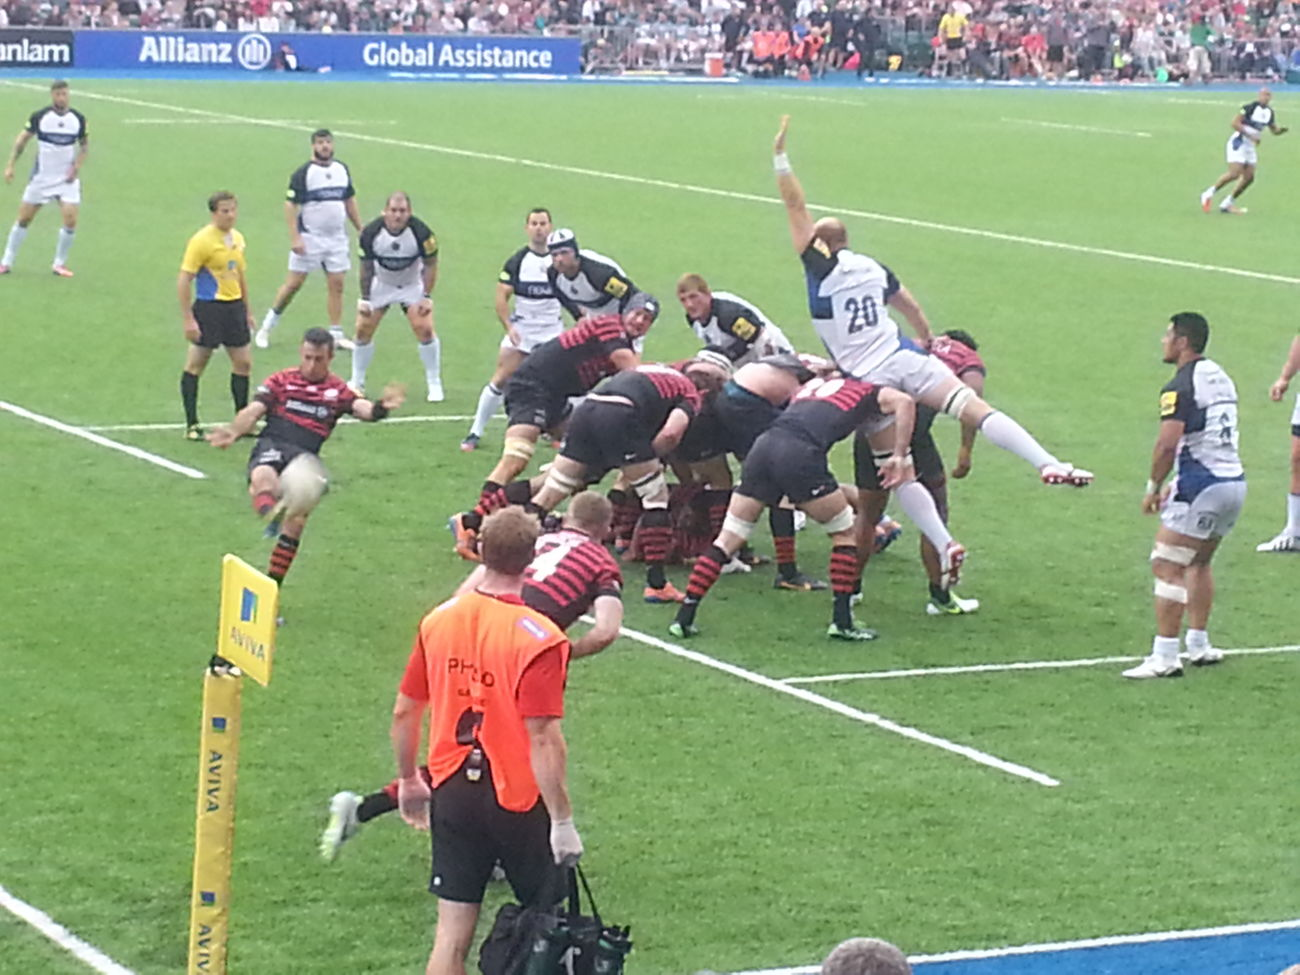 Rugby London Watching Rugby Watching The RugbySaracens Rugby